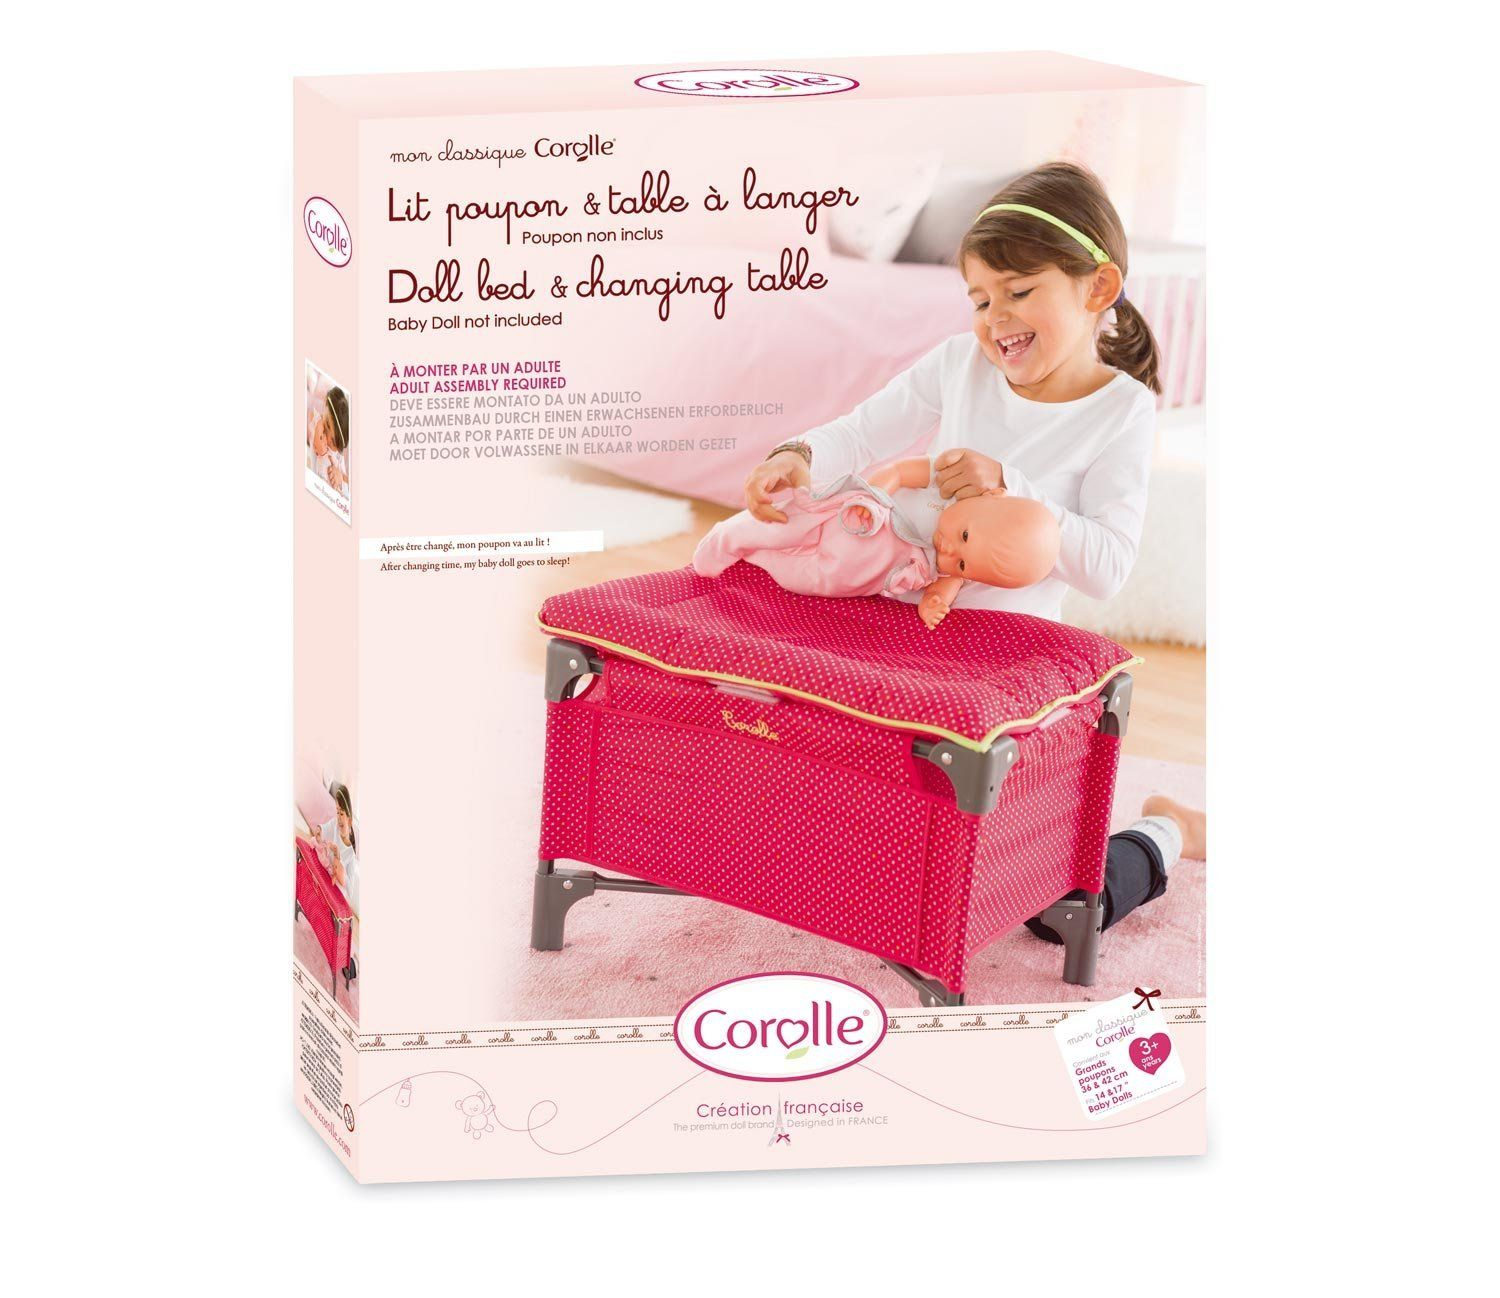 Cherry Bed & Changing Table Doll Accessory by Corolle (DMT98) by Corolle